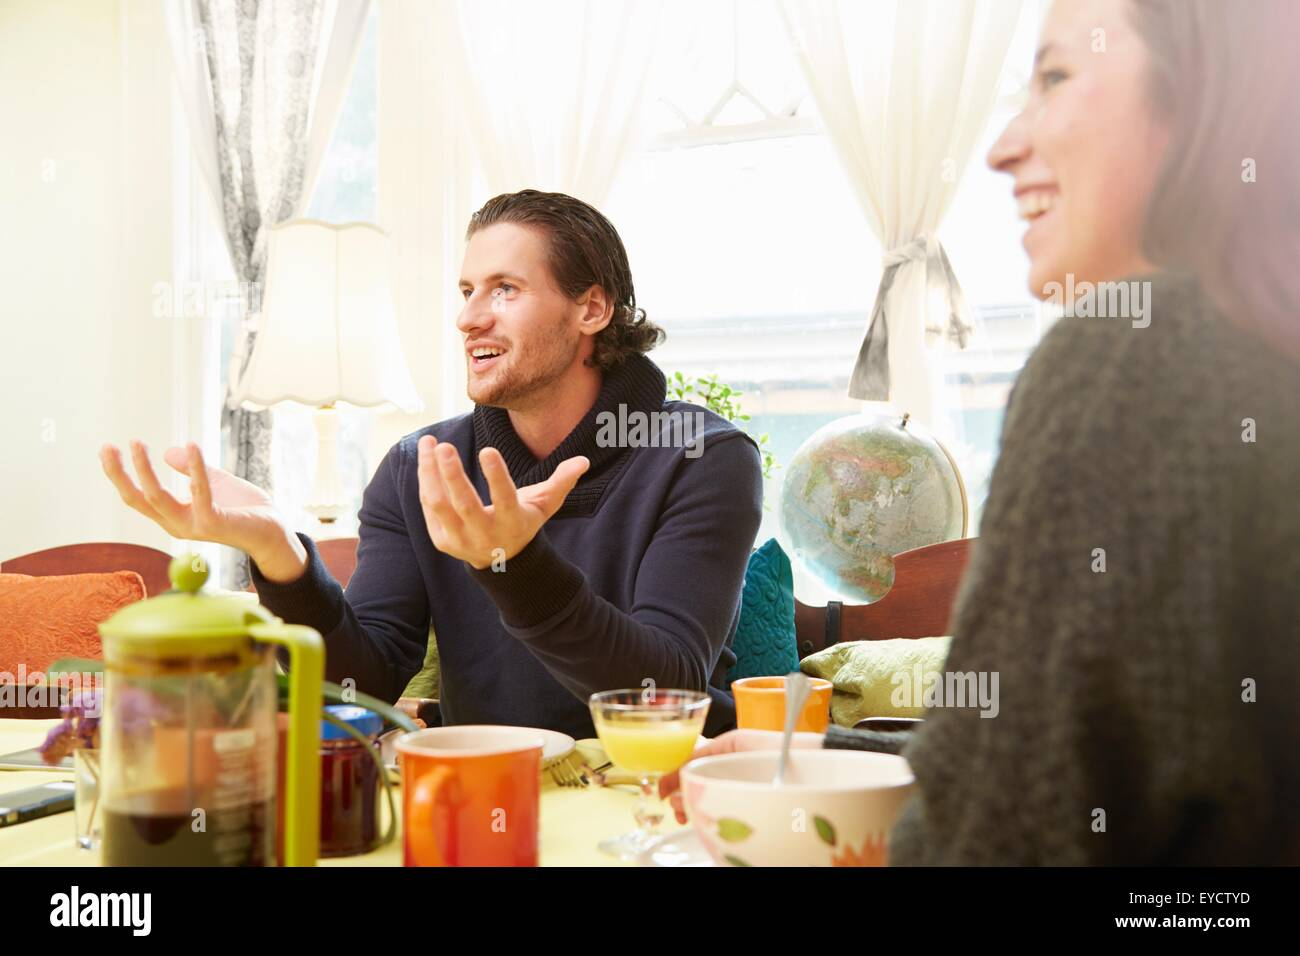 Over shoulder view of young man explaining at breakfast table - Stock Image